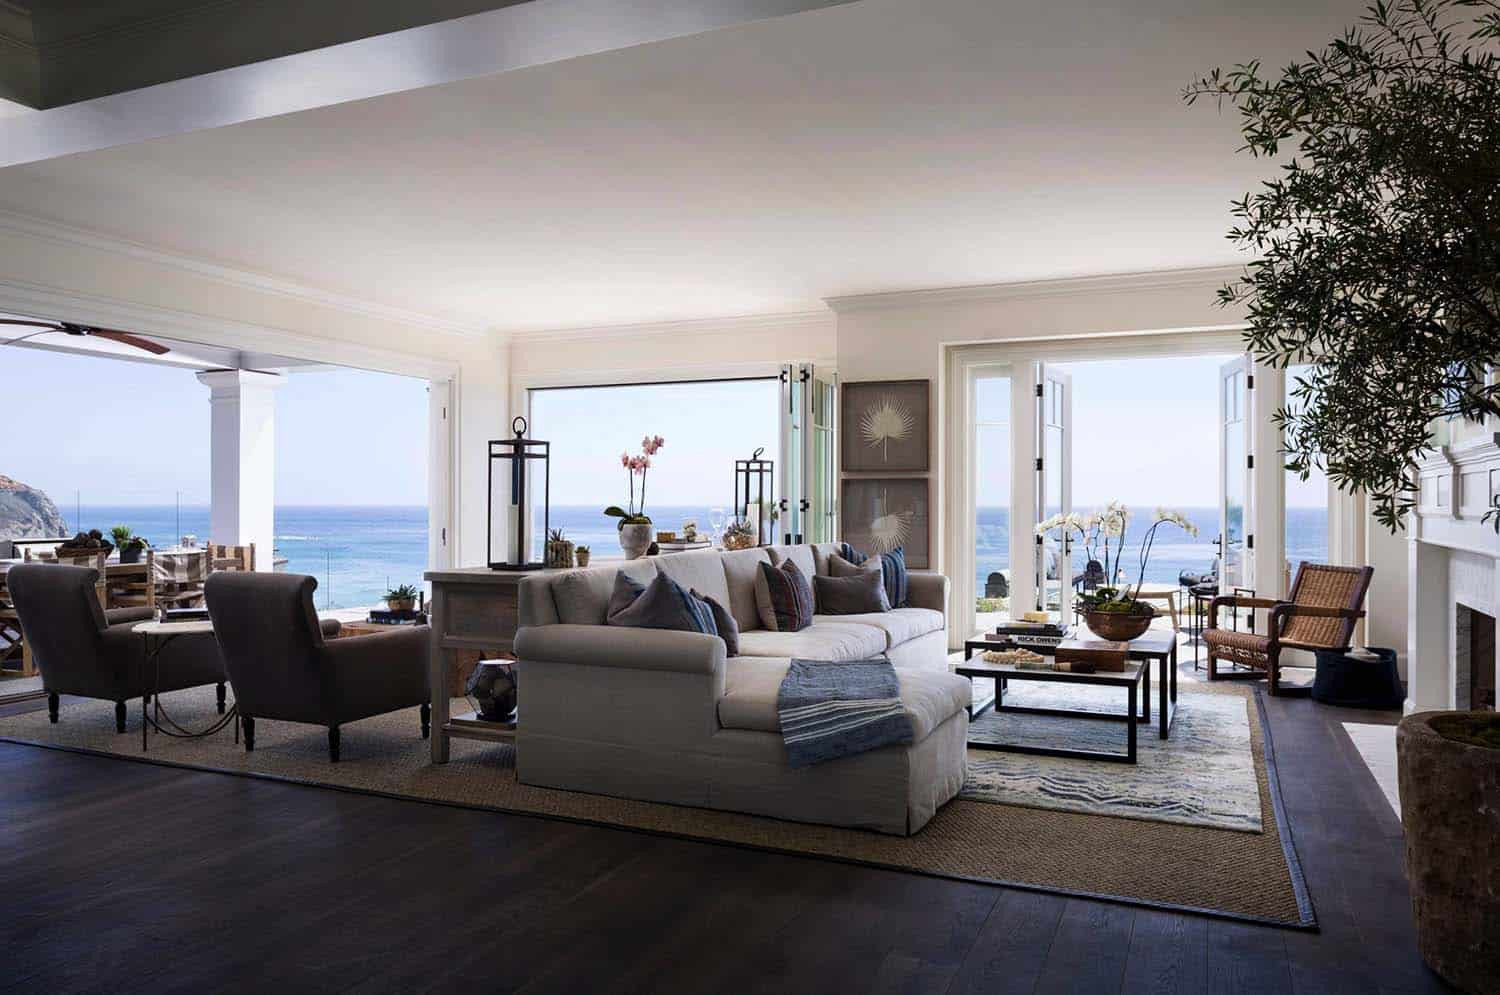 Luxury Beach House-Brown Design Group-02-1 Kindesign